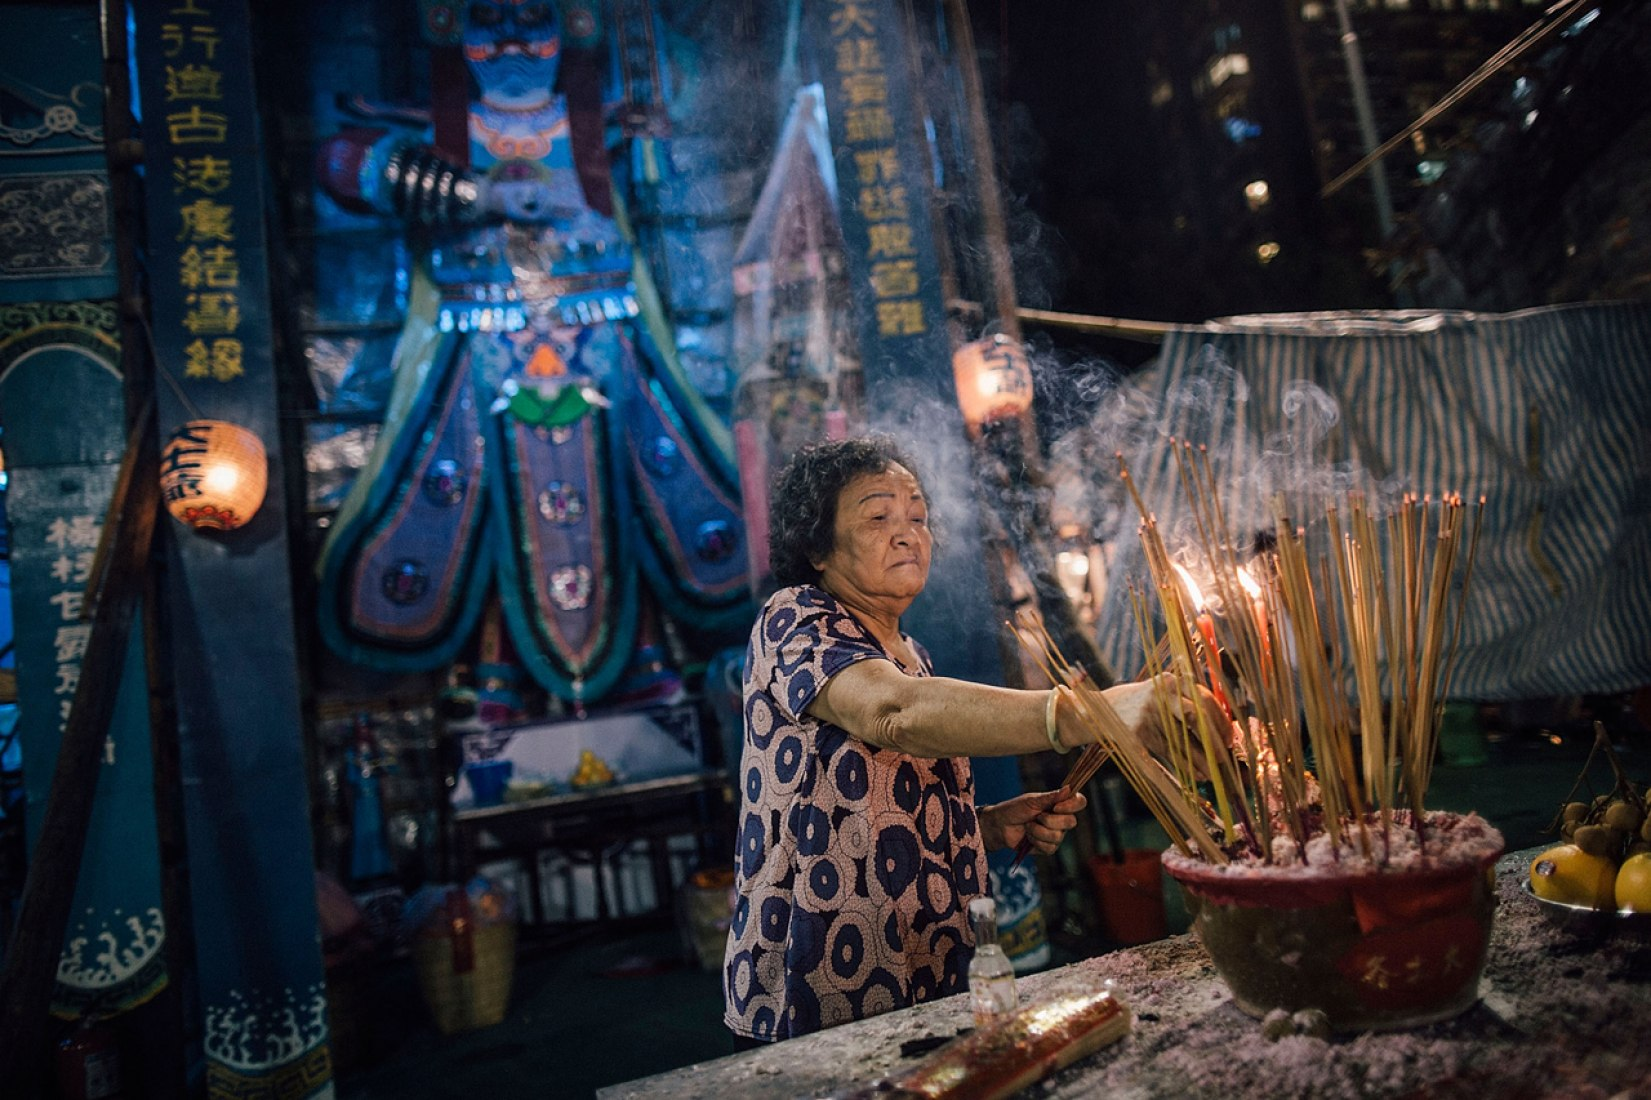 Worshippers make offerings at a park during the month of the Hungry Ghost Festival on August 14, 2015 in Hong Kong.